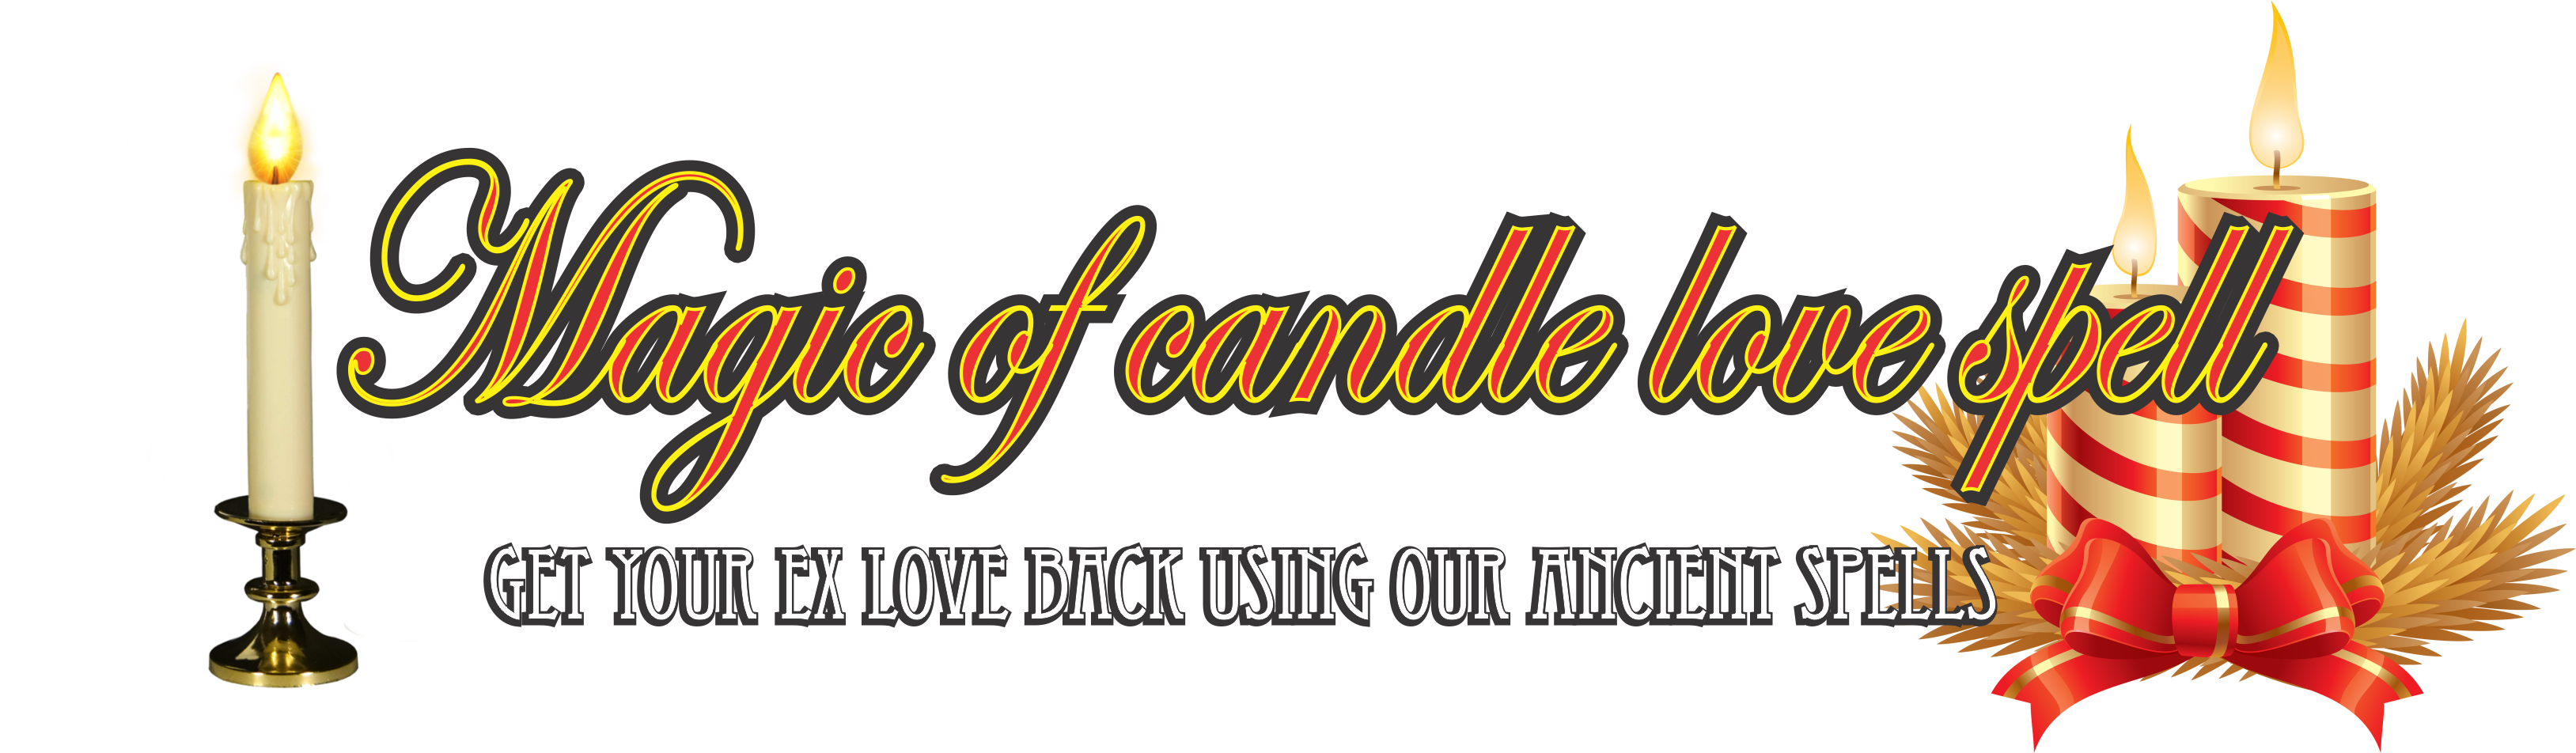 Candle Love Spells To Get Love Back